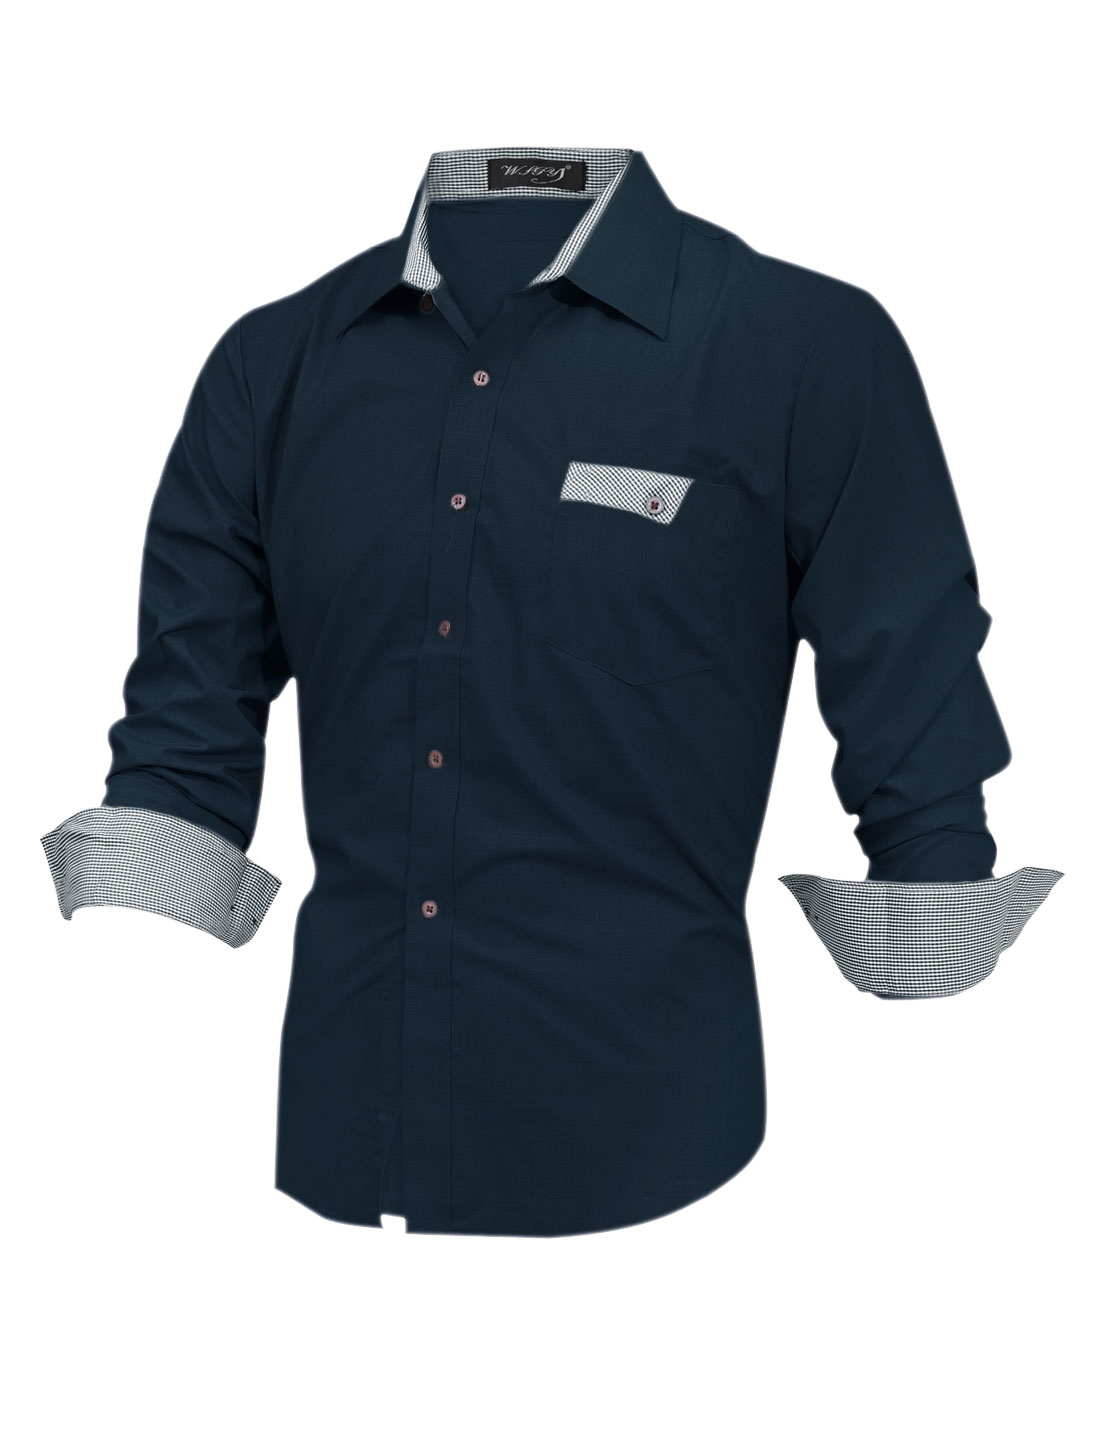 Men Plaids Detail One Breast Pocket Casual Shirt Navy Blue M